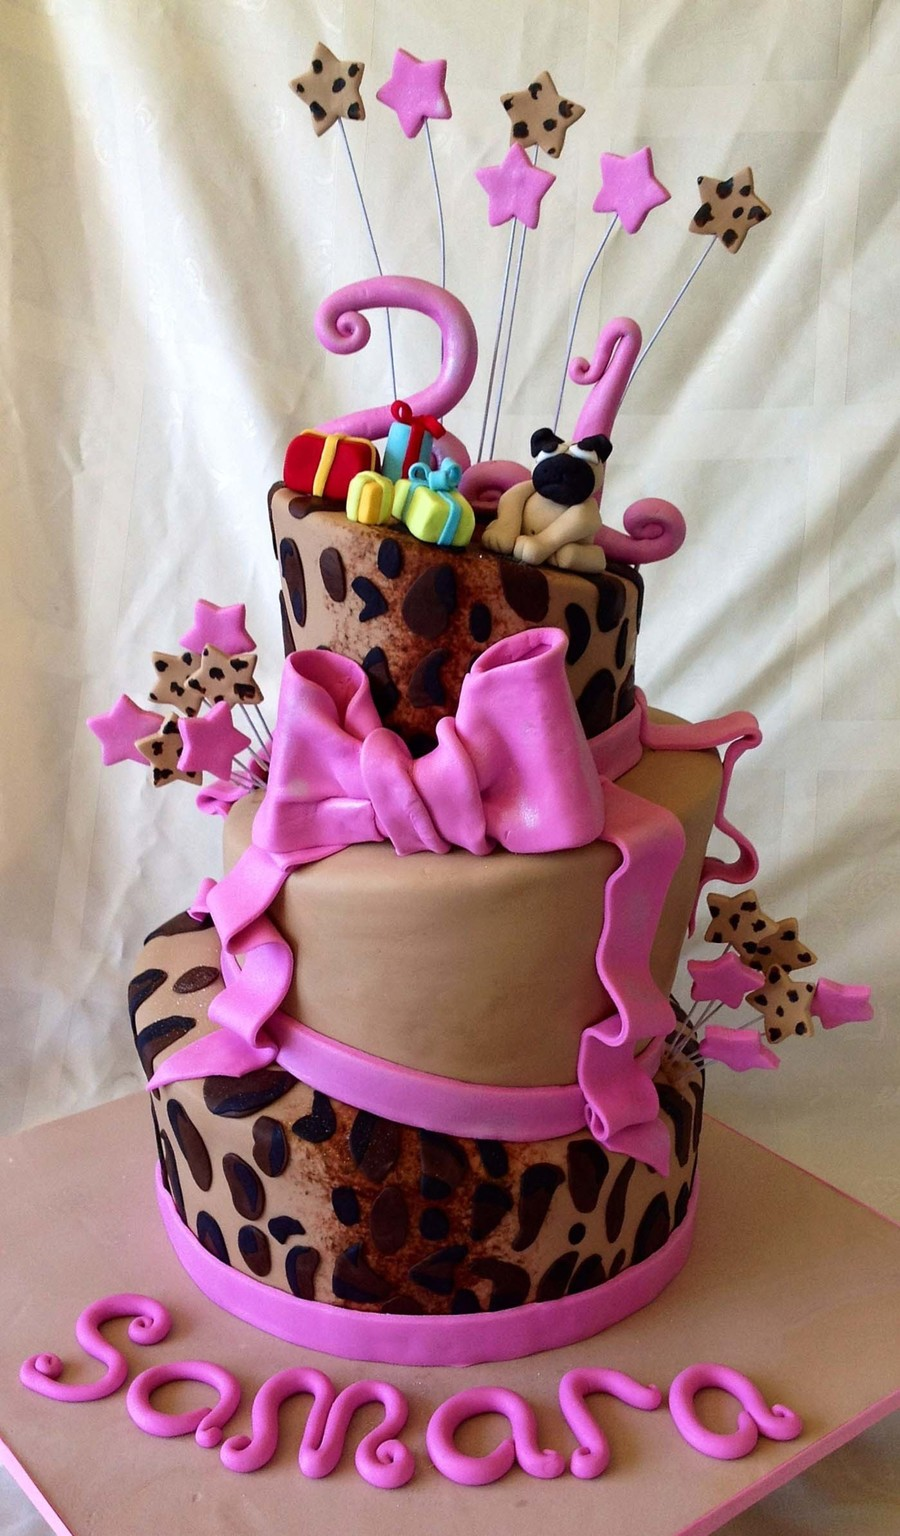 21St Birthday Cake Topsy Turvy Style Leopard Print On 2 Tiers With Hot Pink Accents Gumpaste Pug Dog And Tiny Wrapped Gifts On Top on Cake Central